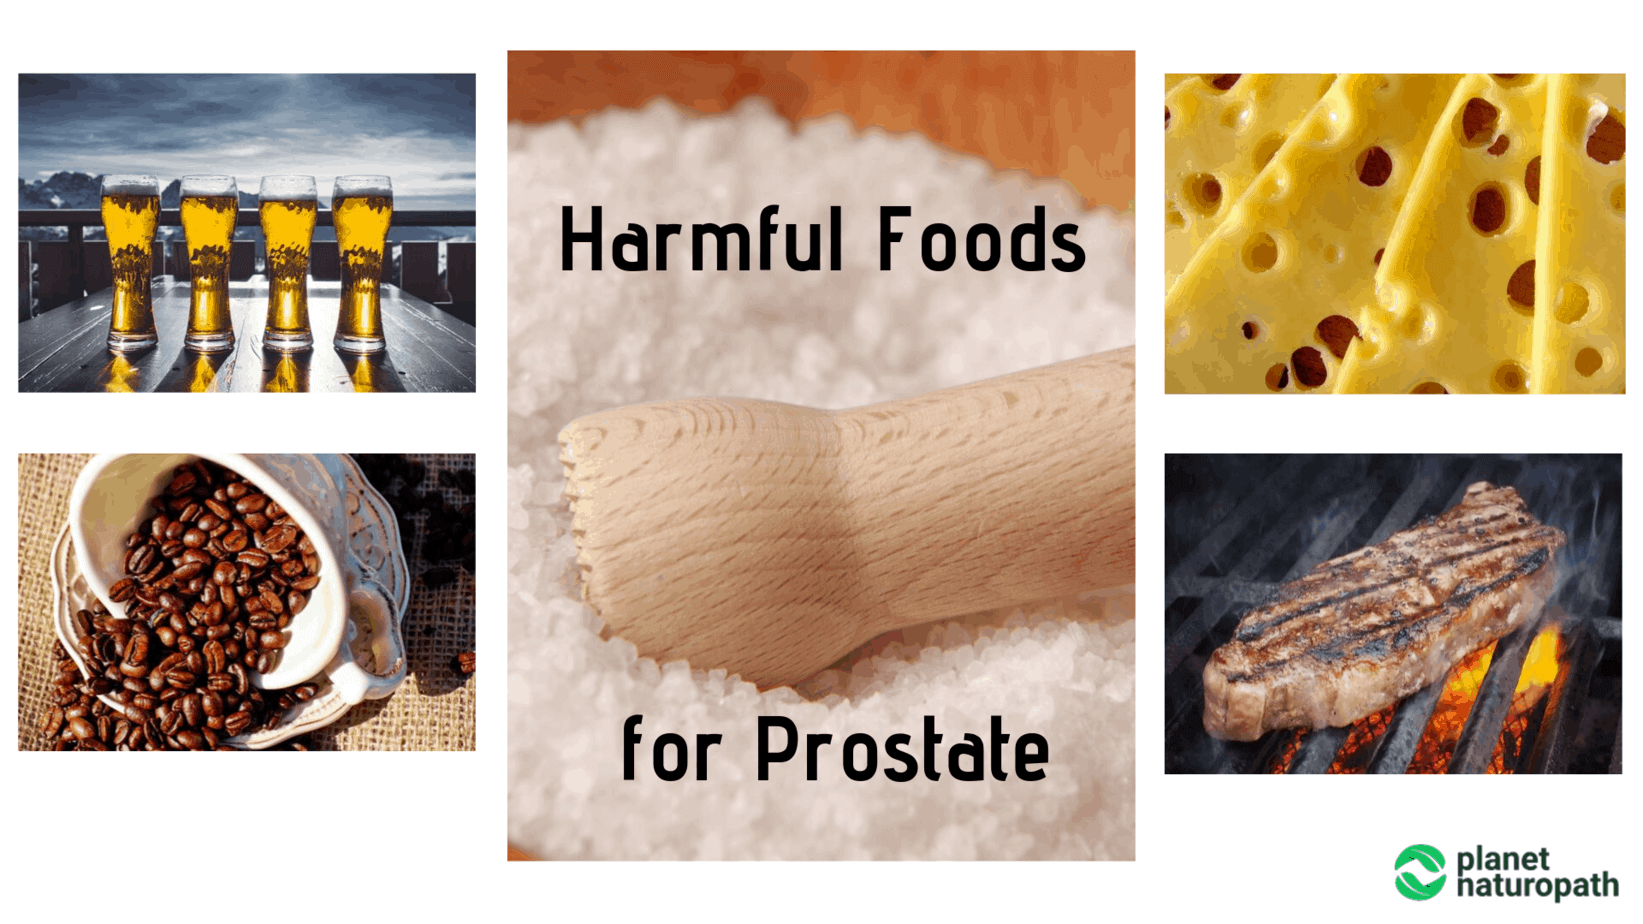 Harmful-Foods-for-Prostate